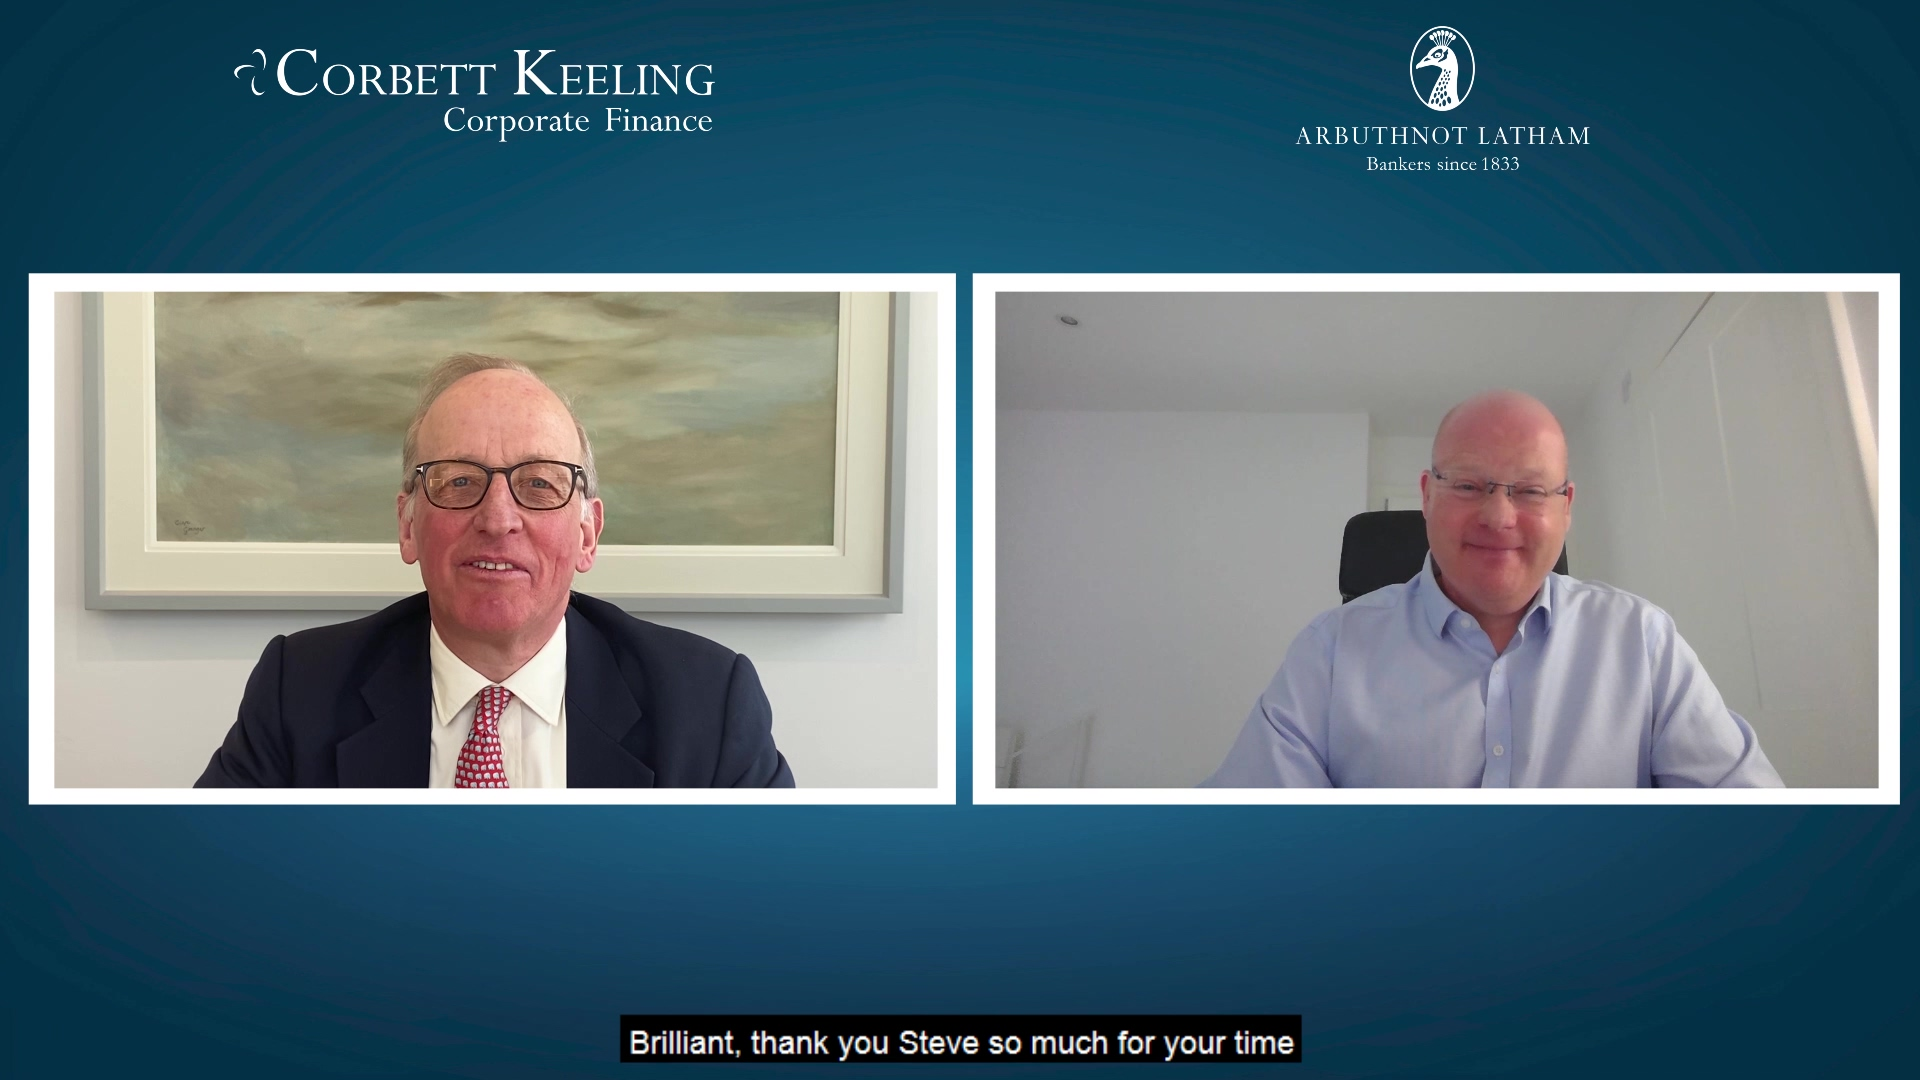 What are the benefits of a wealth planning professional working alongside other advisers, day-to-day